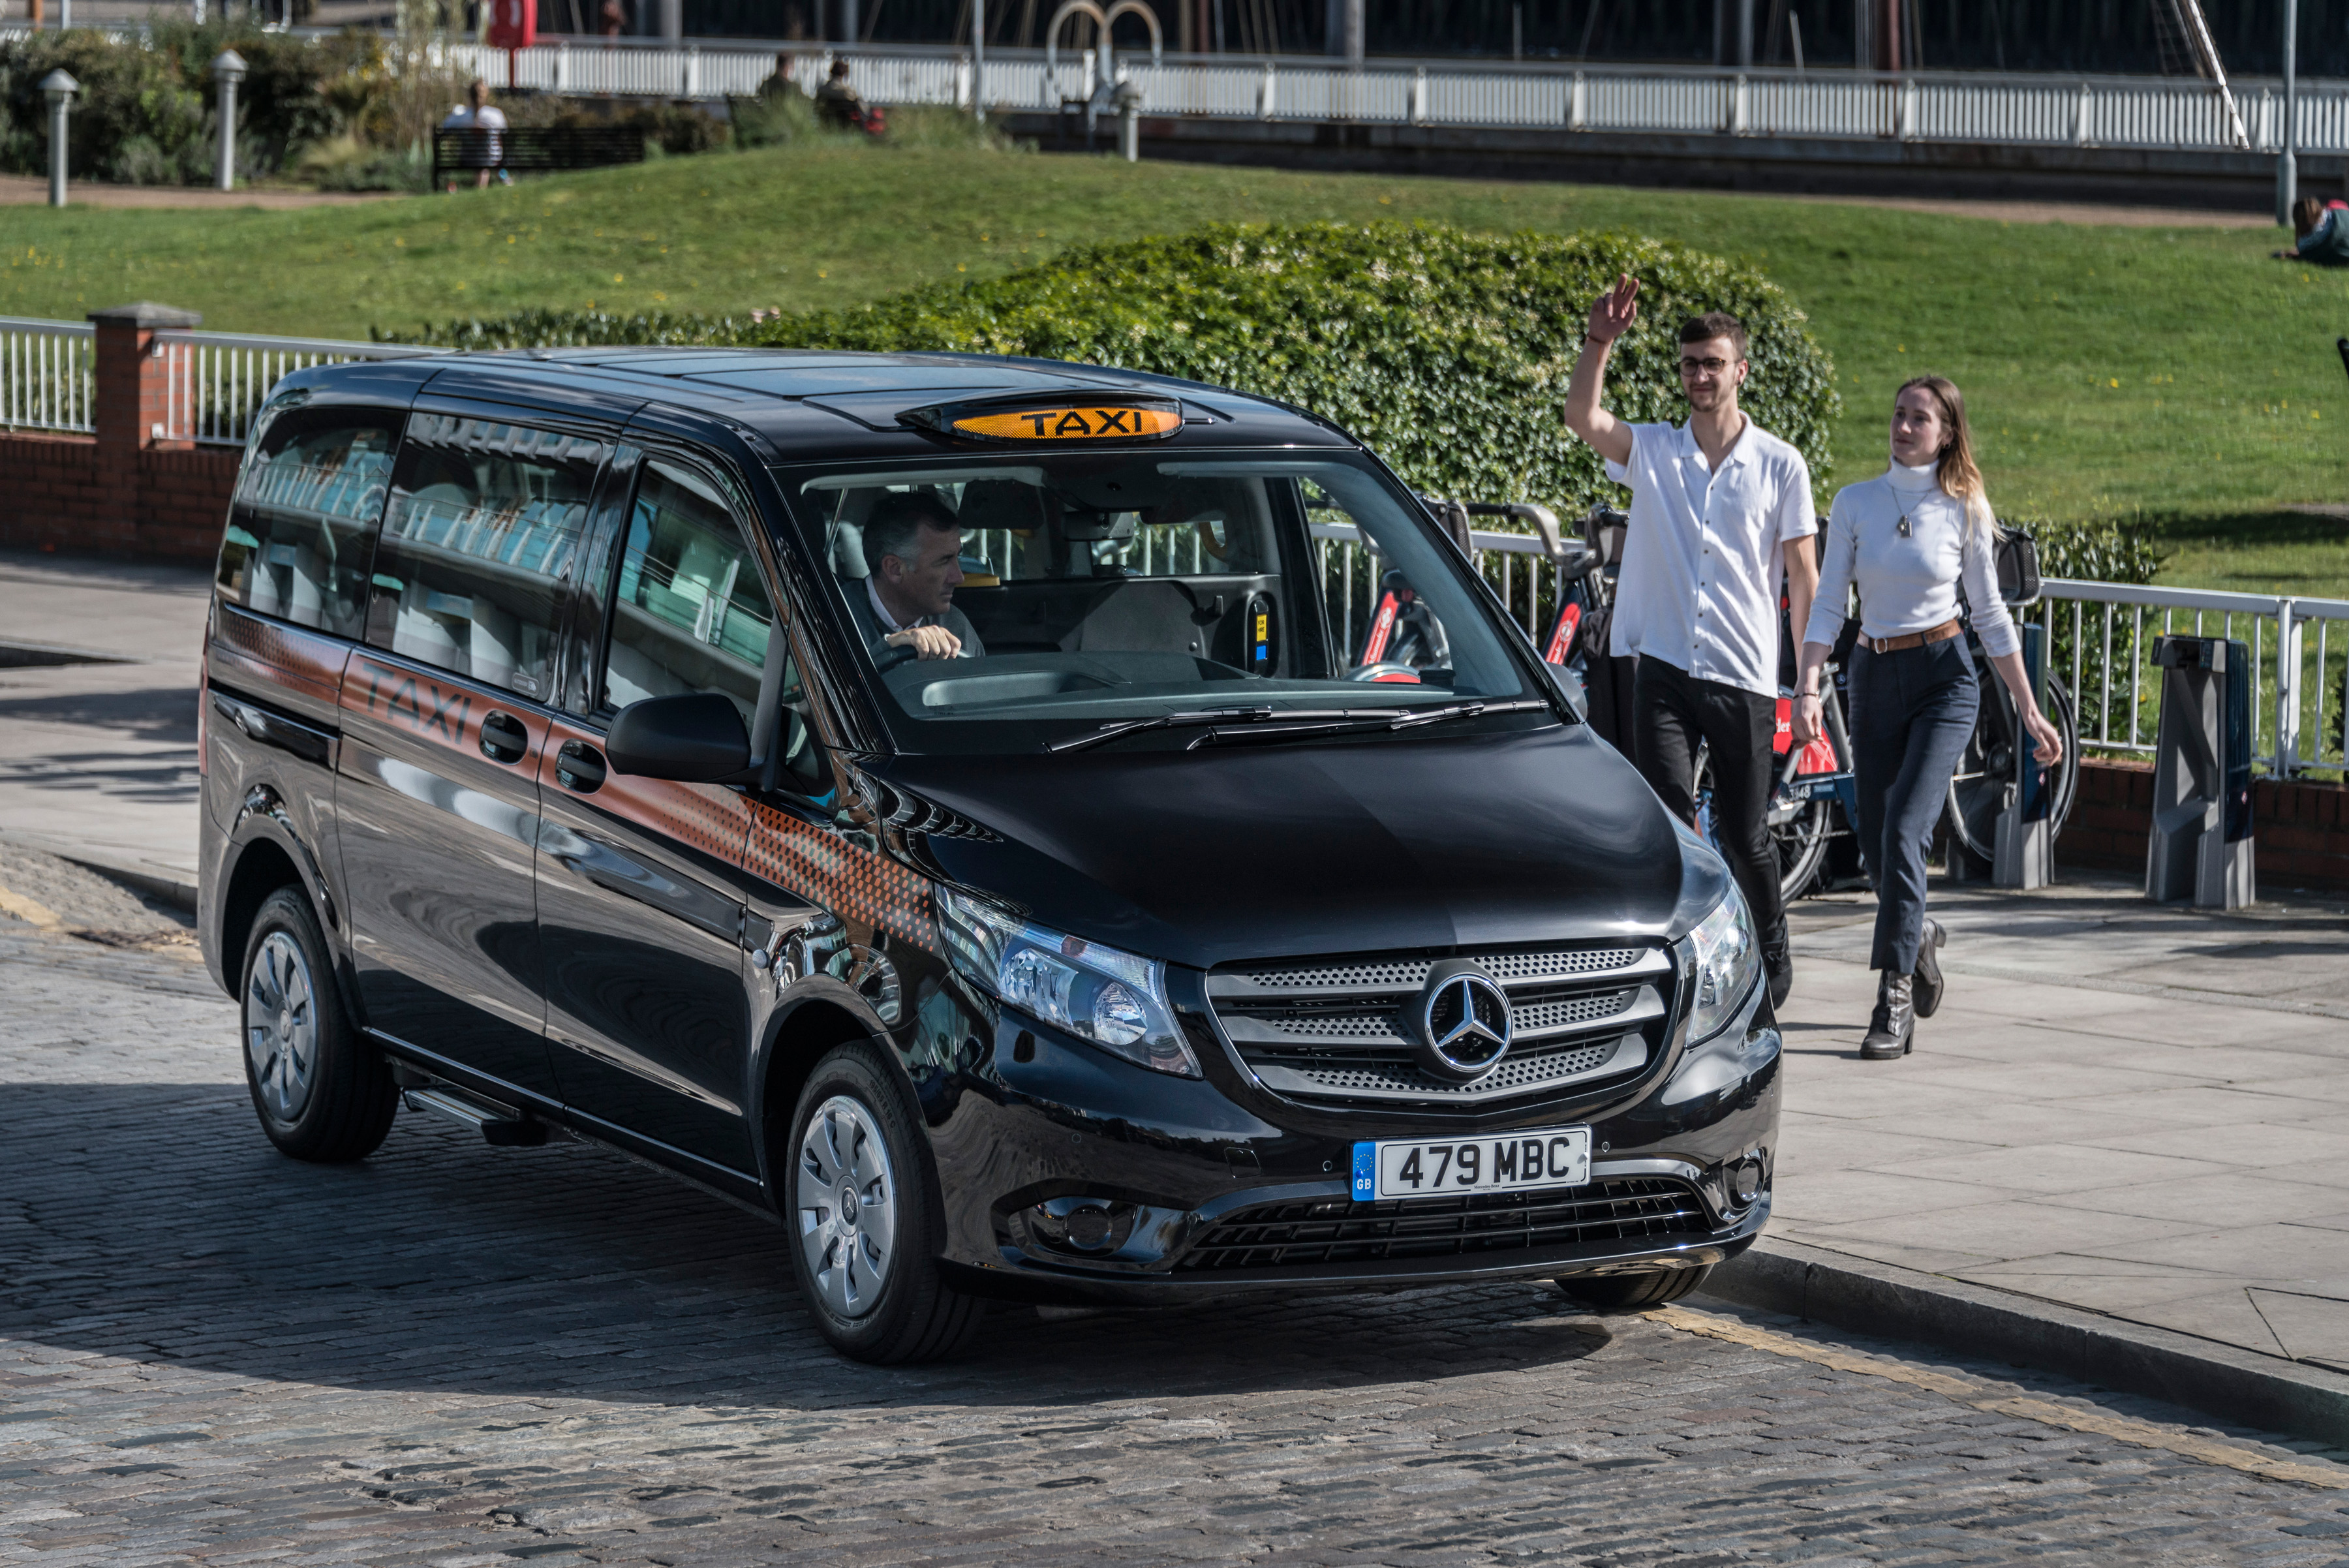 New Mercedes Benz Vito Based Taxi Joins Uk Ranks Smmt